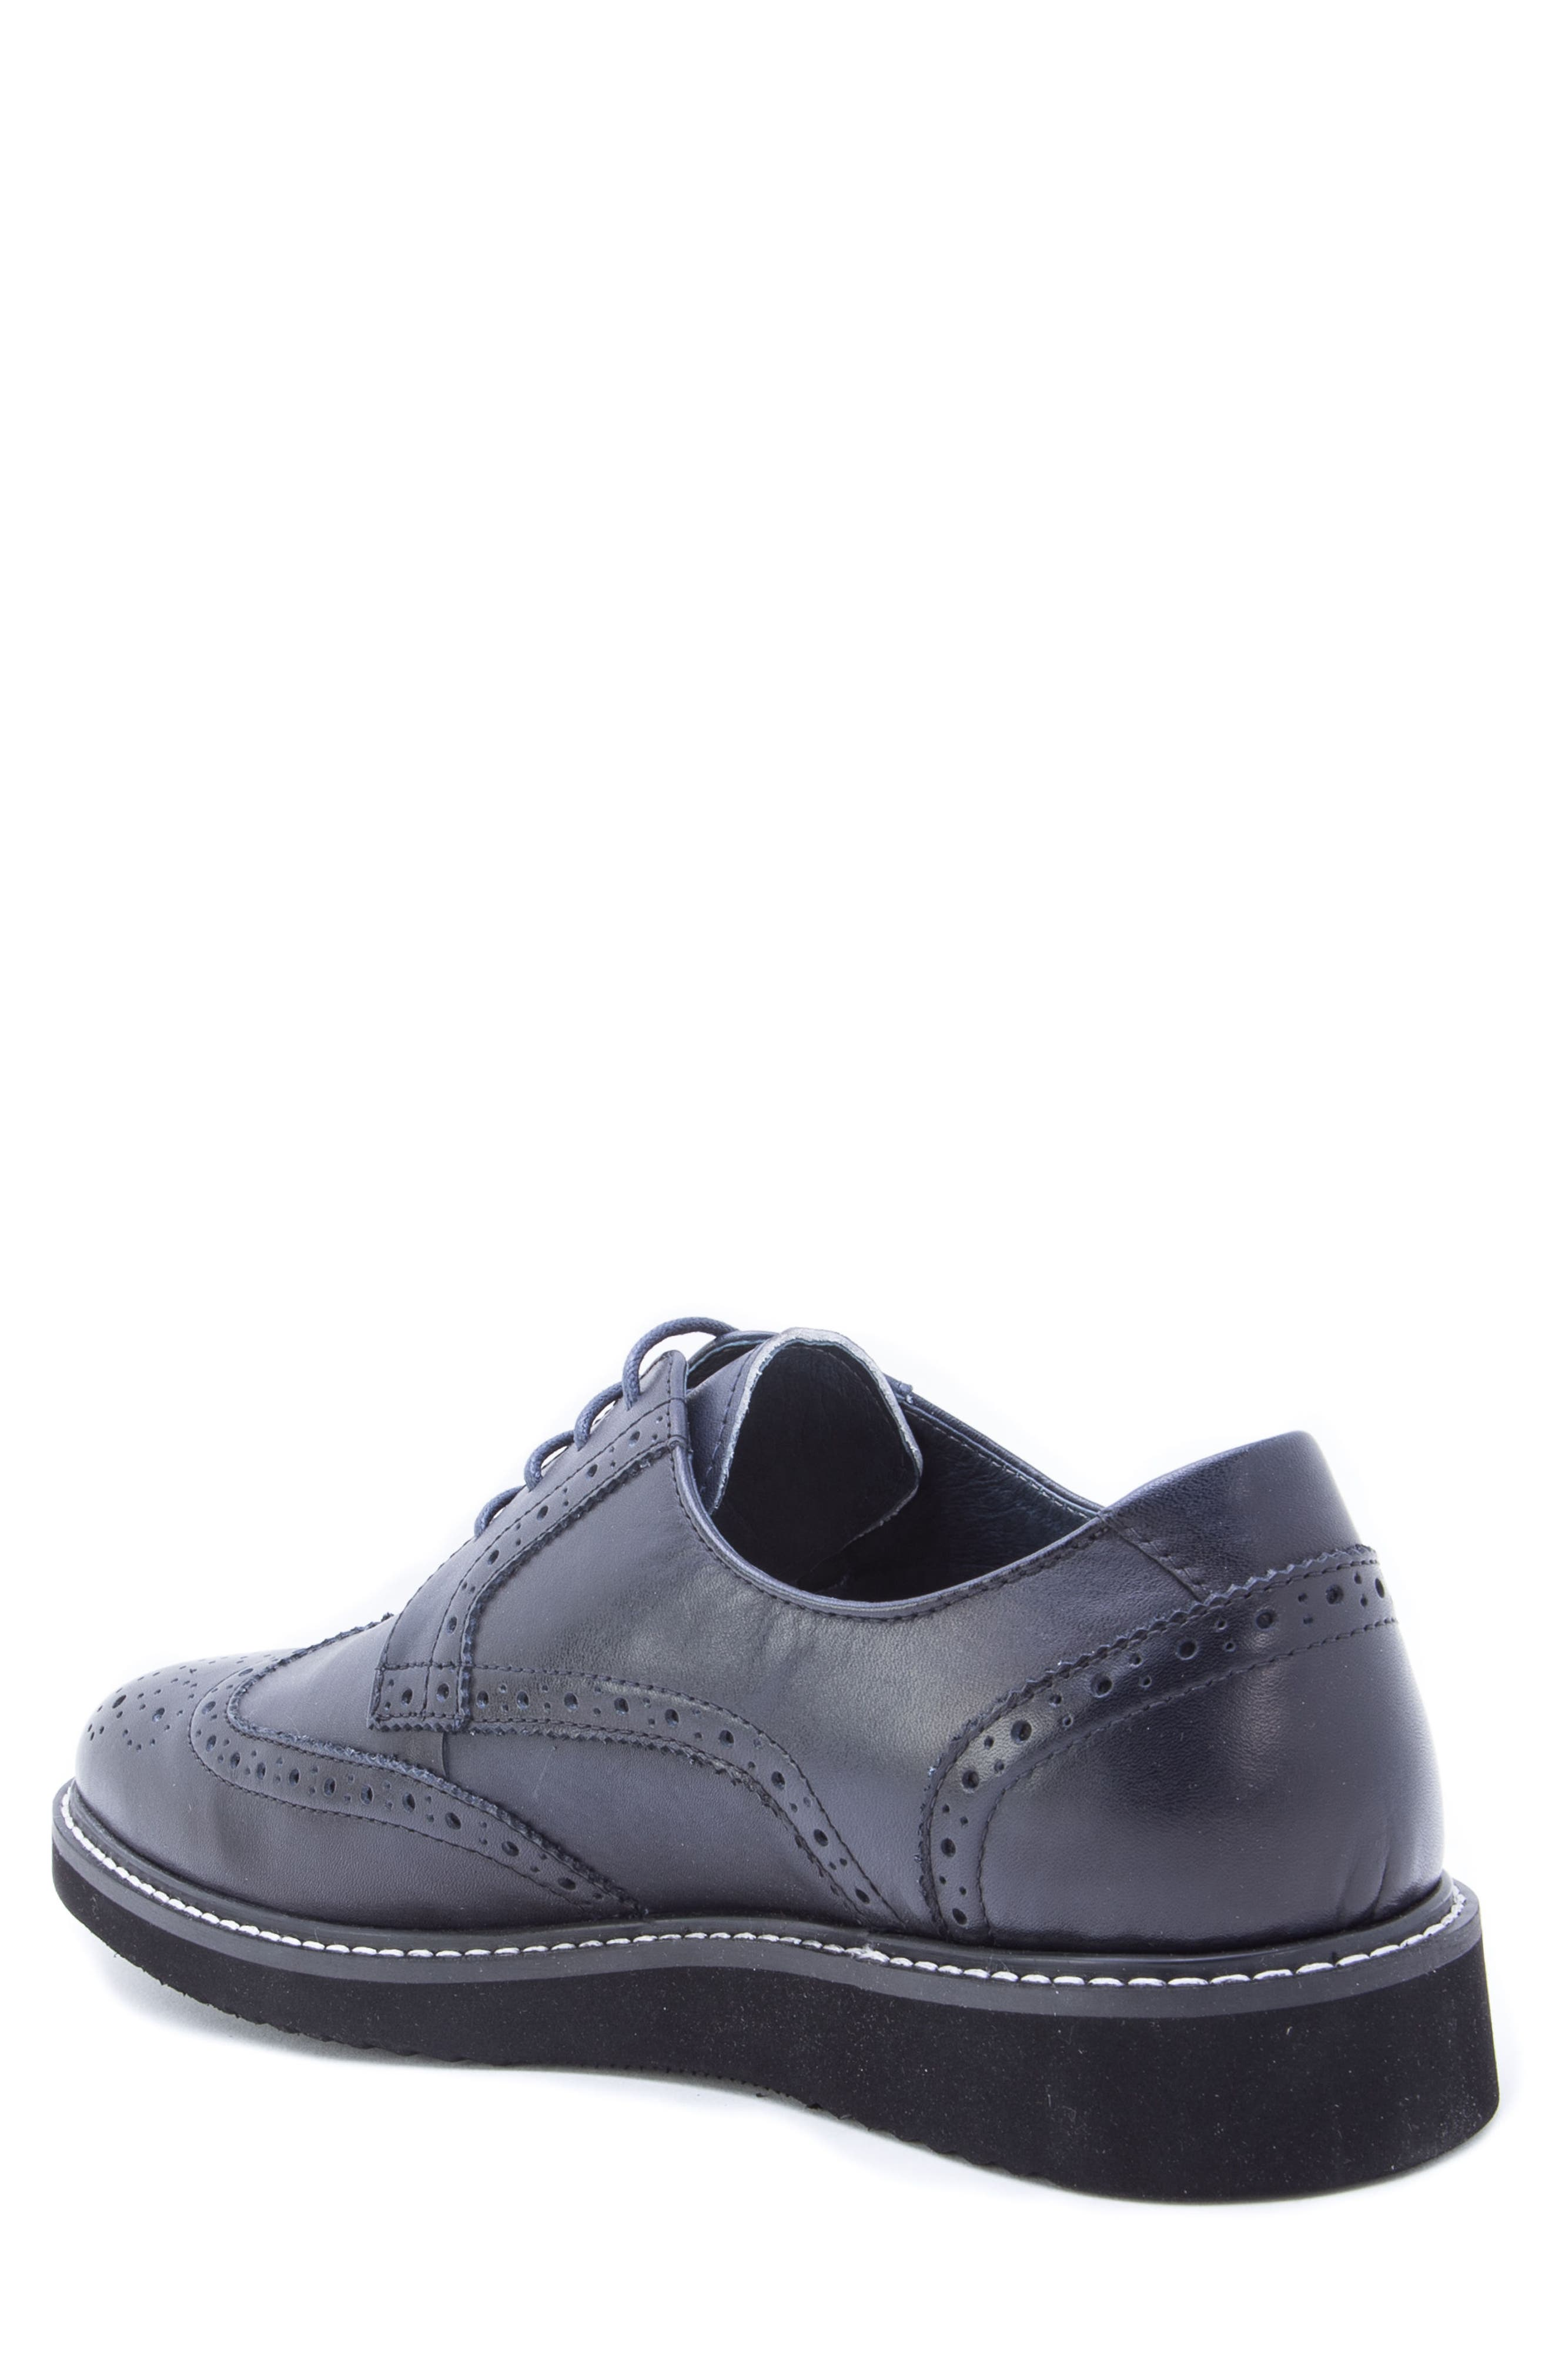 Siena Wingtip Derby,                             Alternate thumbnail 2, color,                             NAVY LEATHER